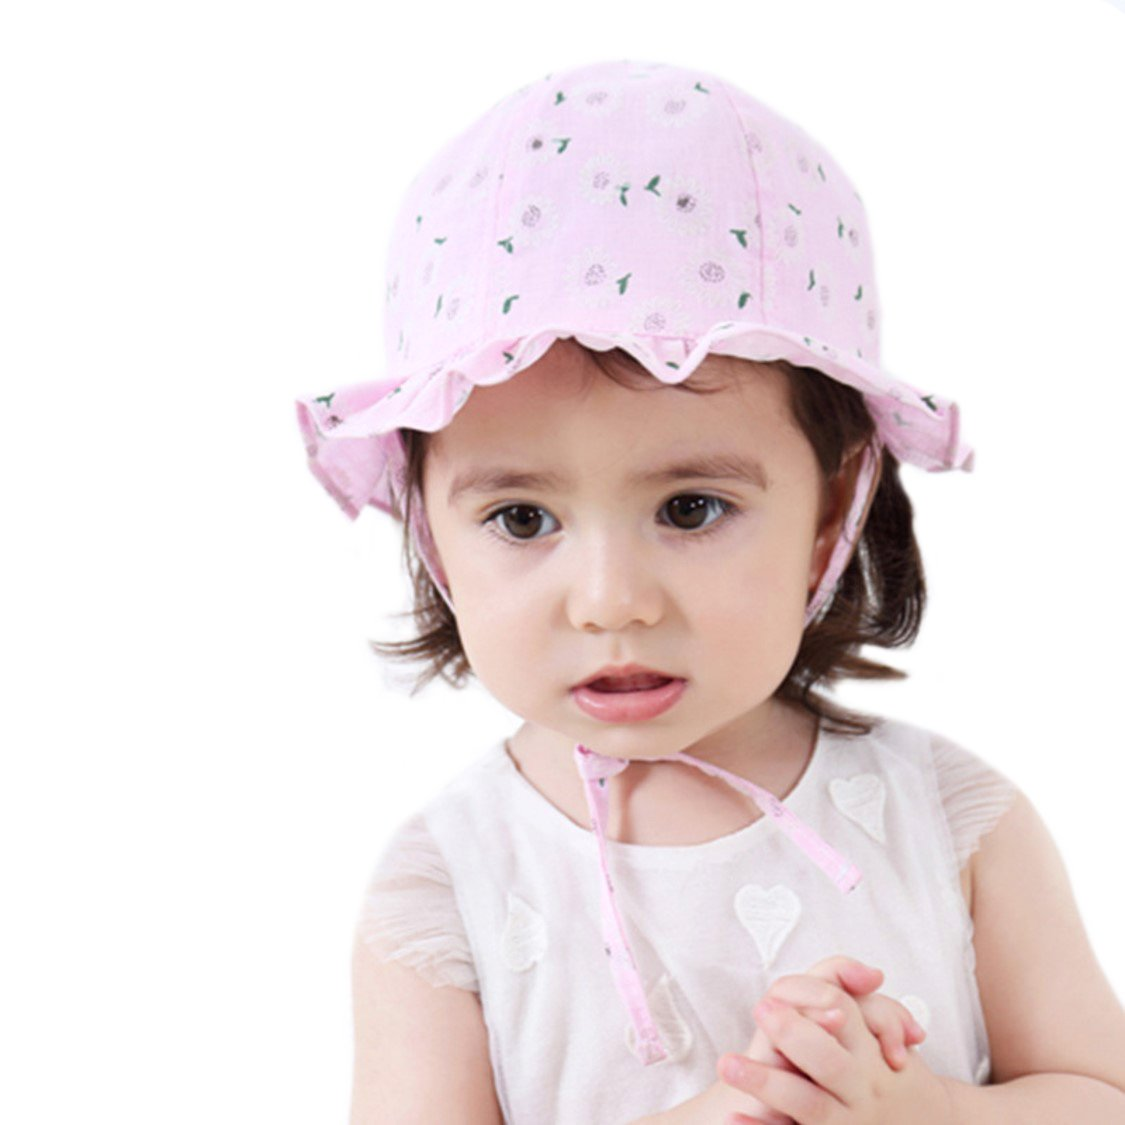 iHomey Baby Toddler Girls Wide Brim Sun Hat with Chin Strap Cotton UPF 50+ Bucket Hat